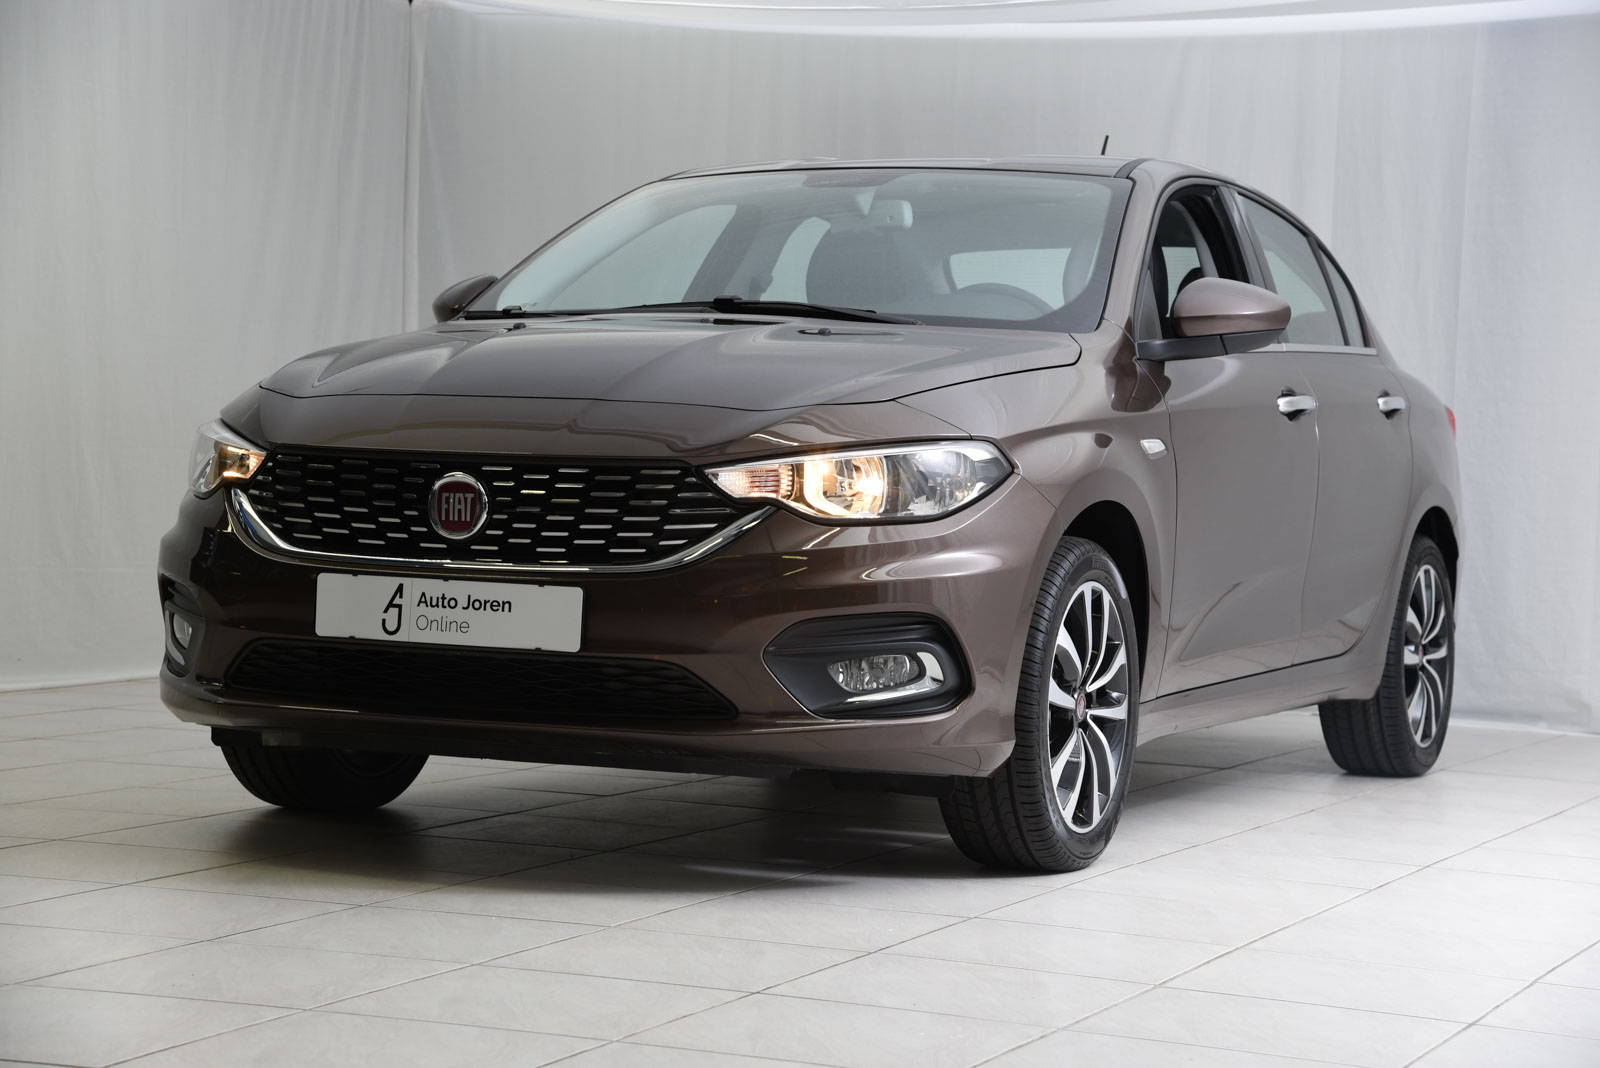 Fiat Tipo Lounge Private Lease AutoJoren.online